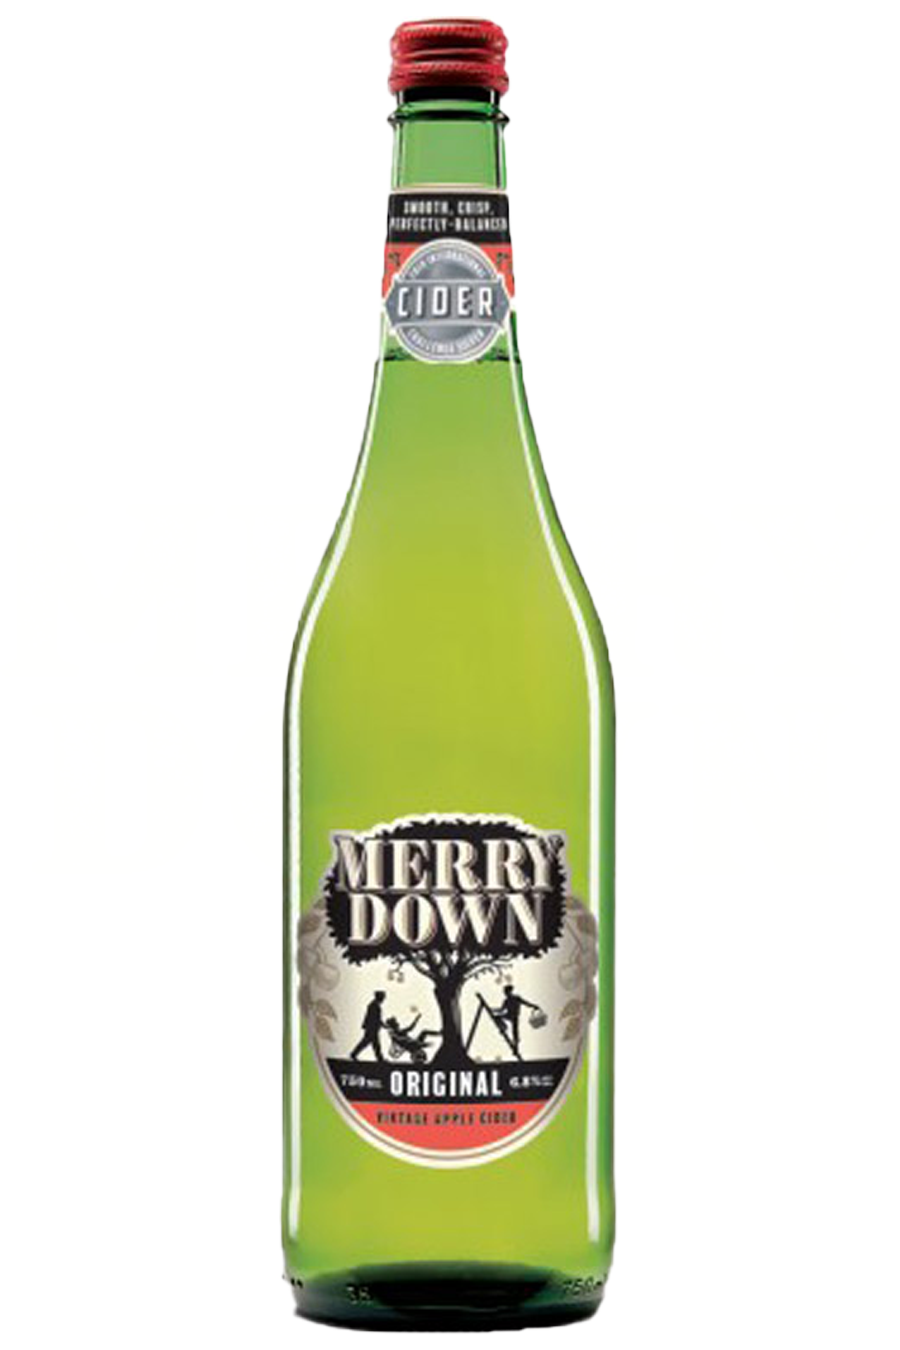 Merrydown Our brands icon